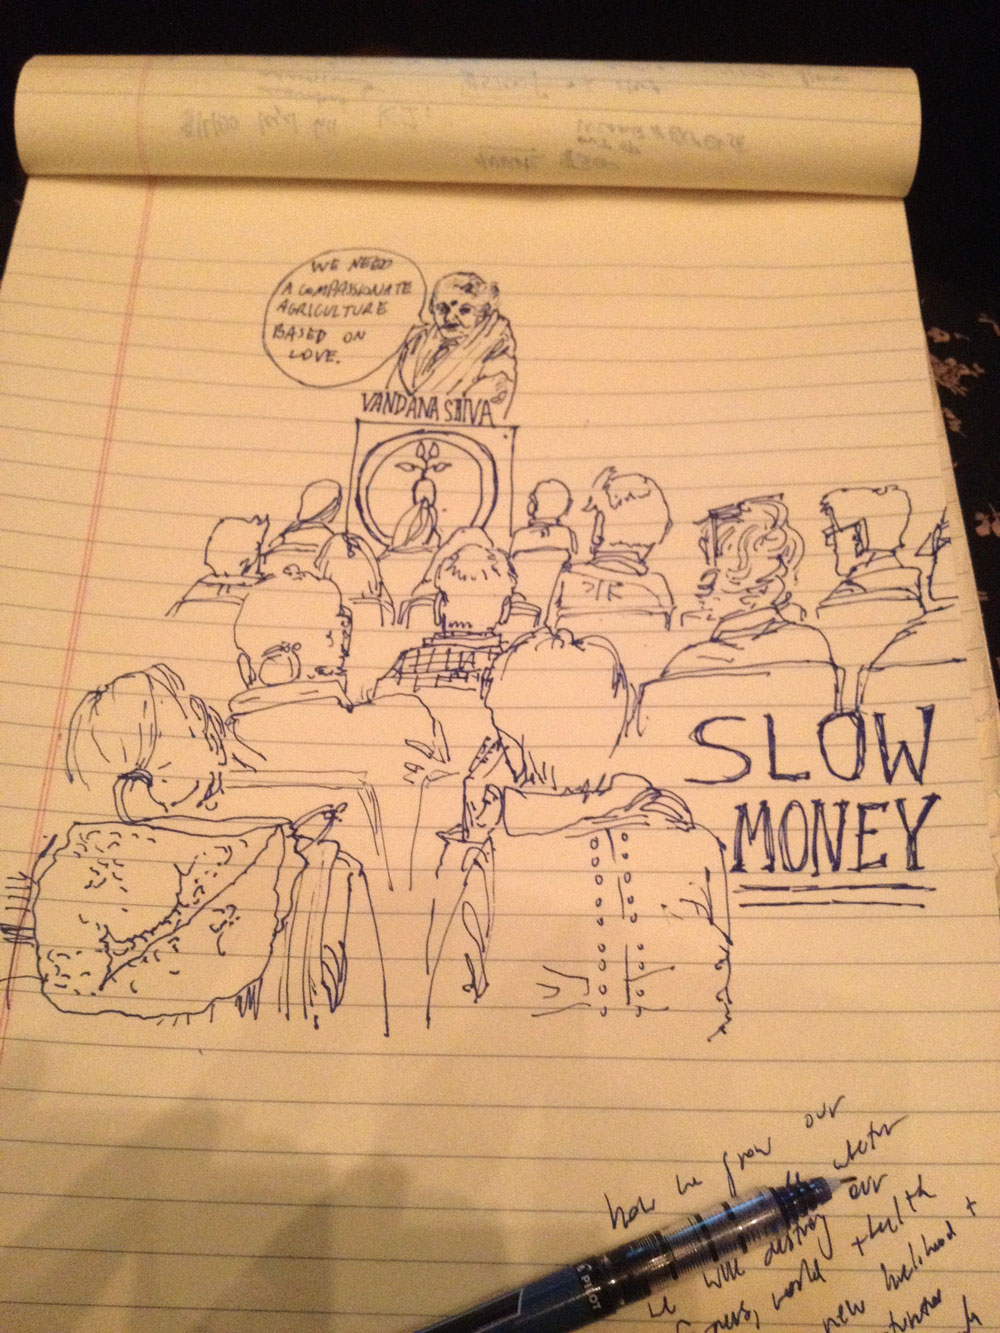 Slow Money Vandana Shiva